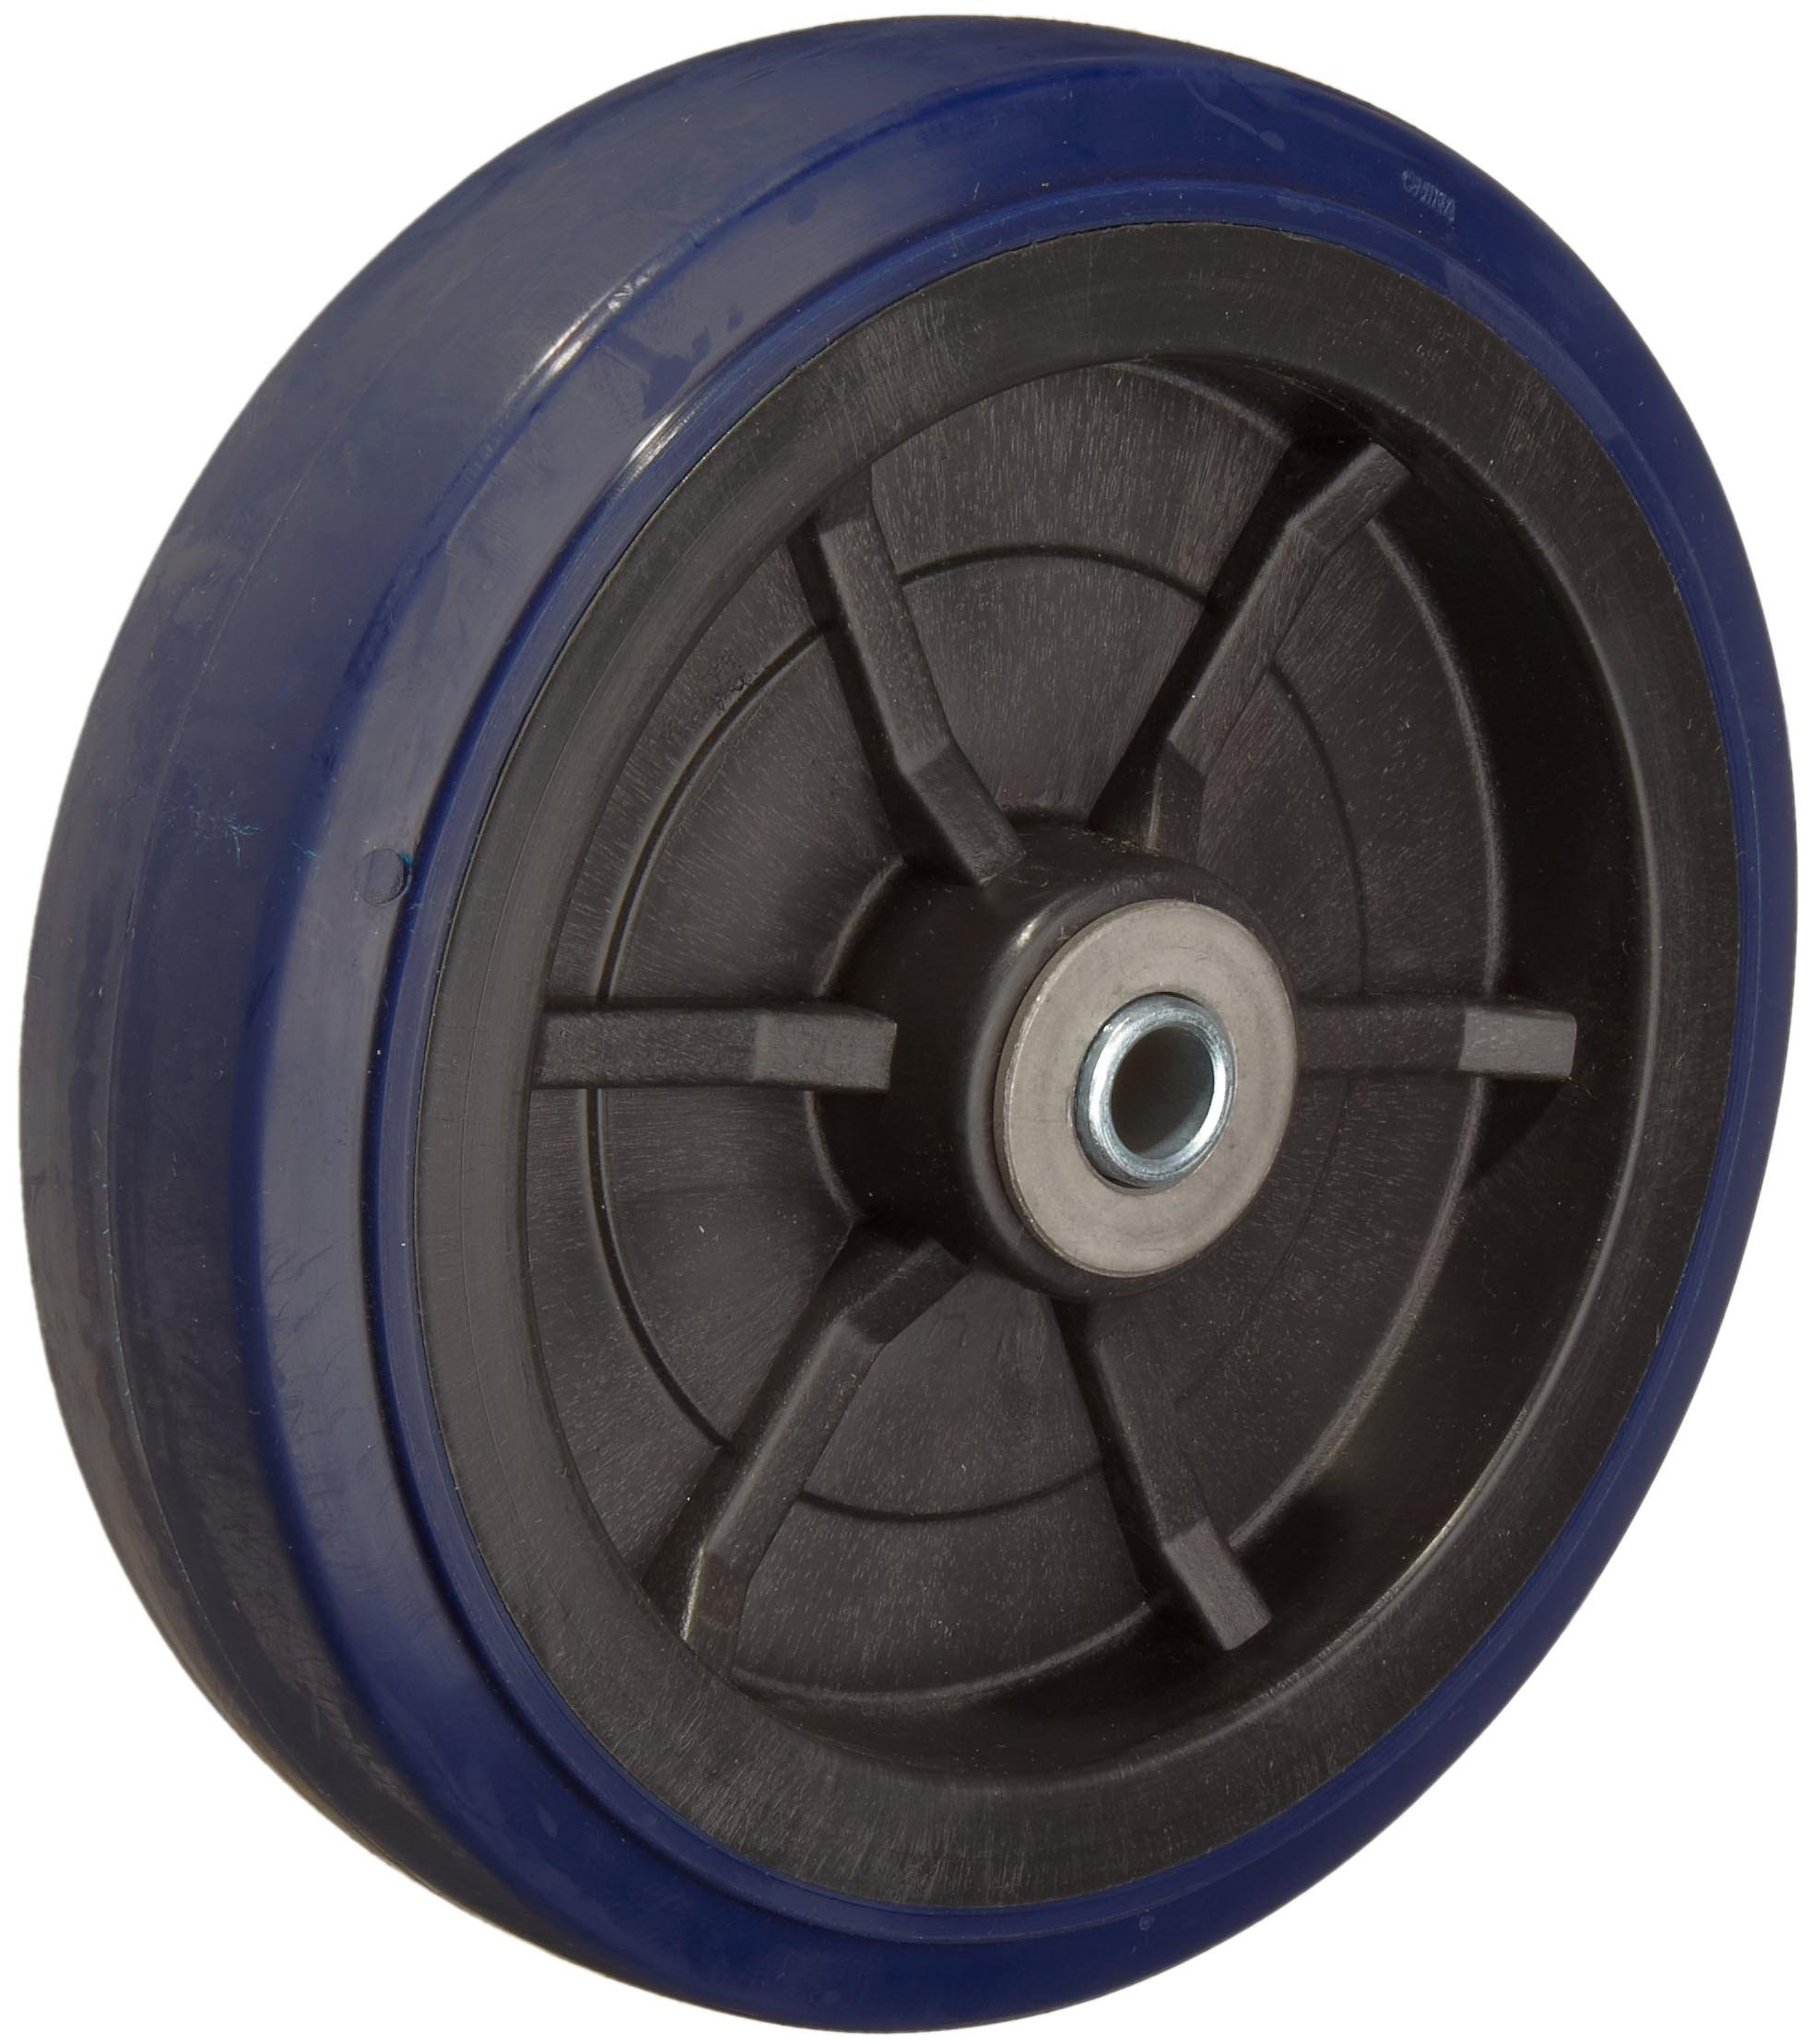 RWM Casters UPR-0820-08 8'' Diameter X 2'' Width Urethane On Polypropylene Wheels With Straight Roller Bearing, 1000 lbs Capacity